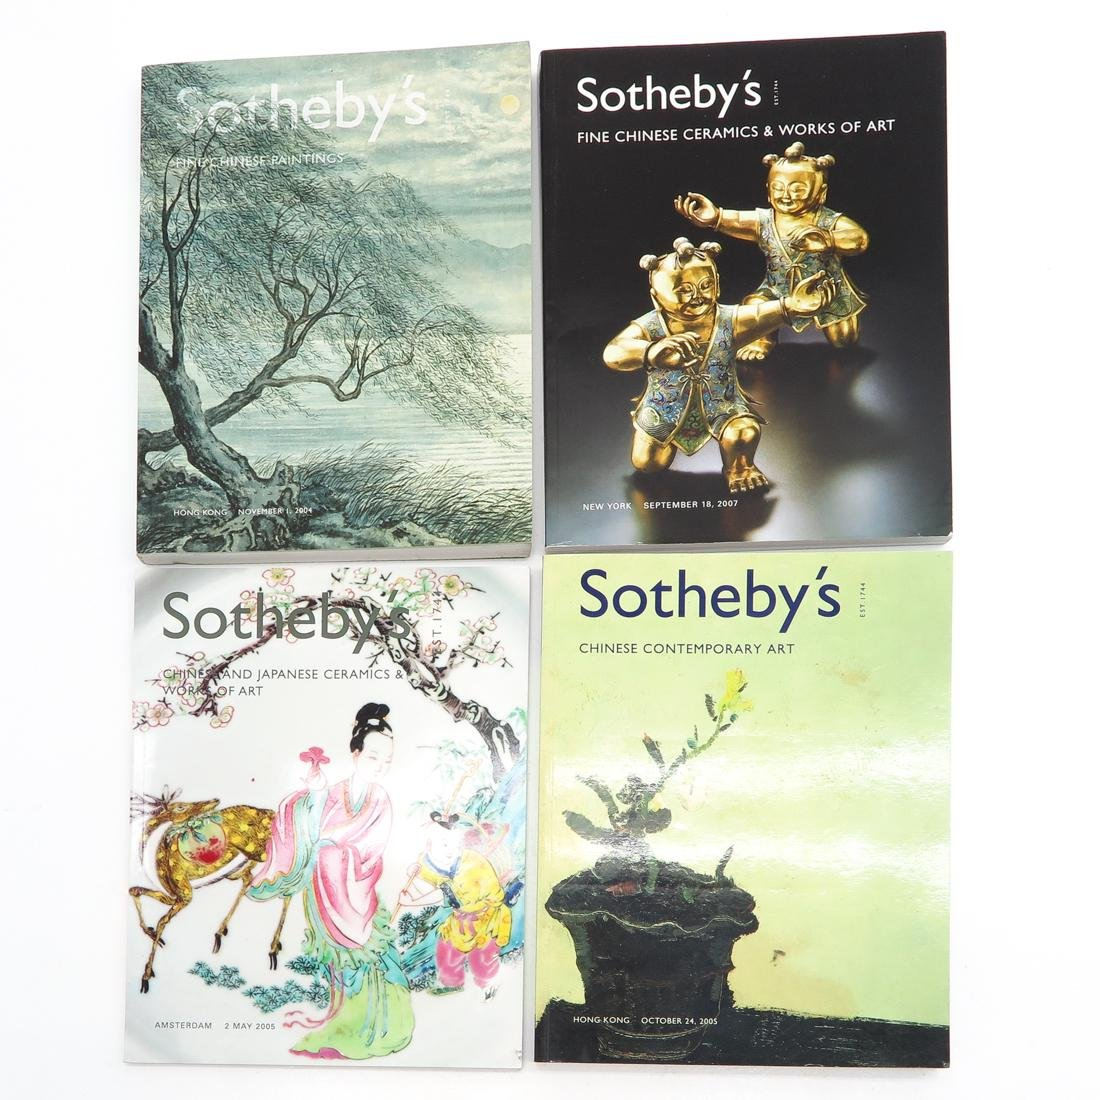 Lot of Sotheby's Asian Subject Auction Catalogs - 2